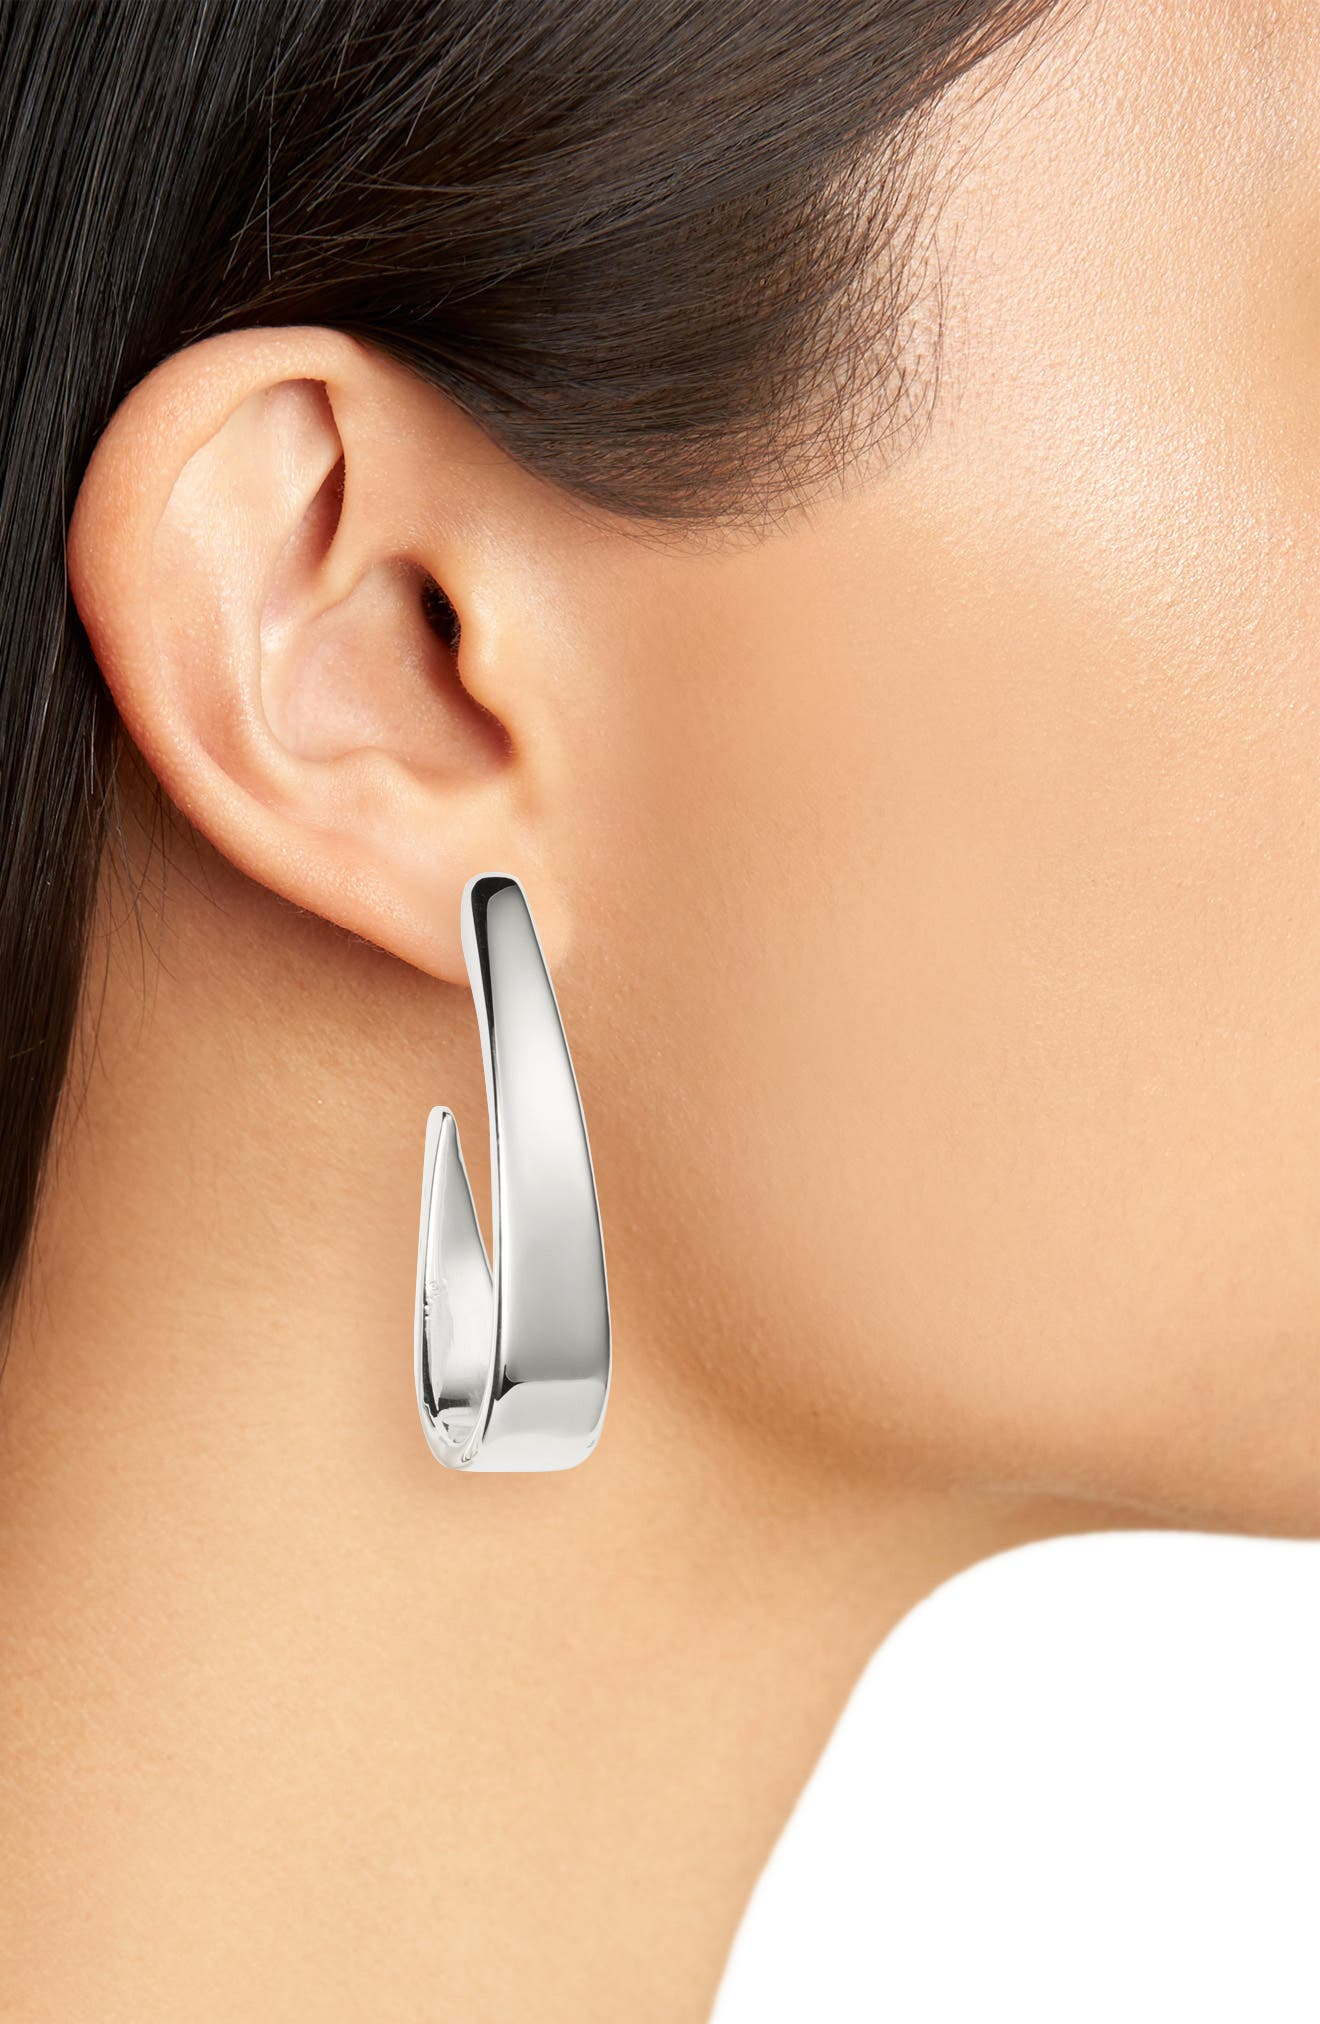 Elongated Oval Hoop Earrings,                             Alternate thumbnail 2, color,                             SILVER